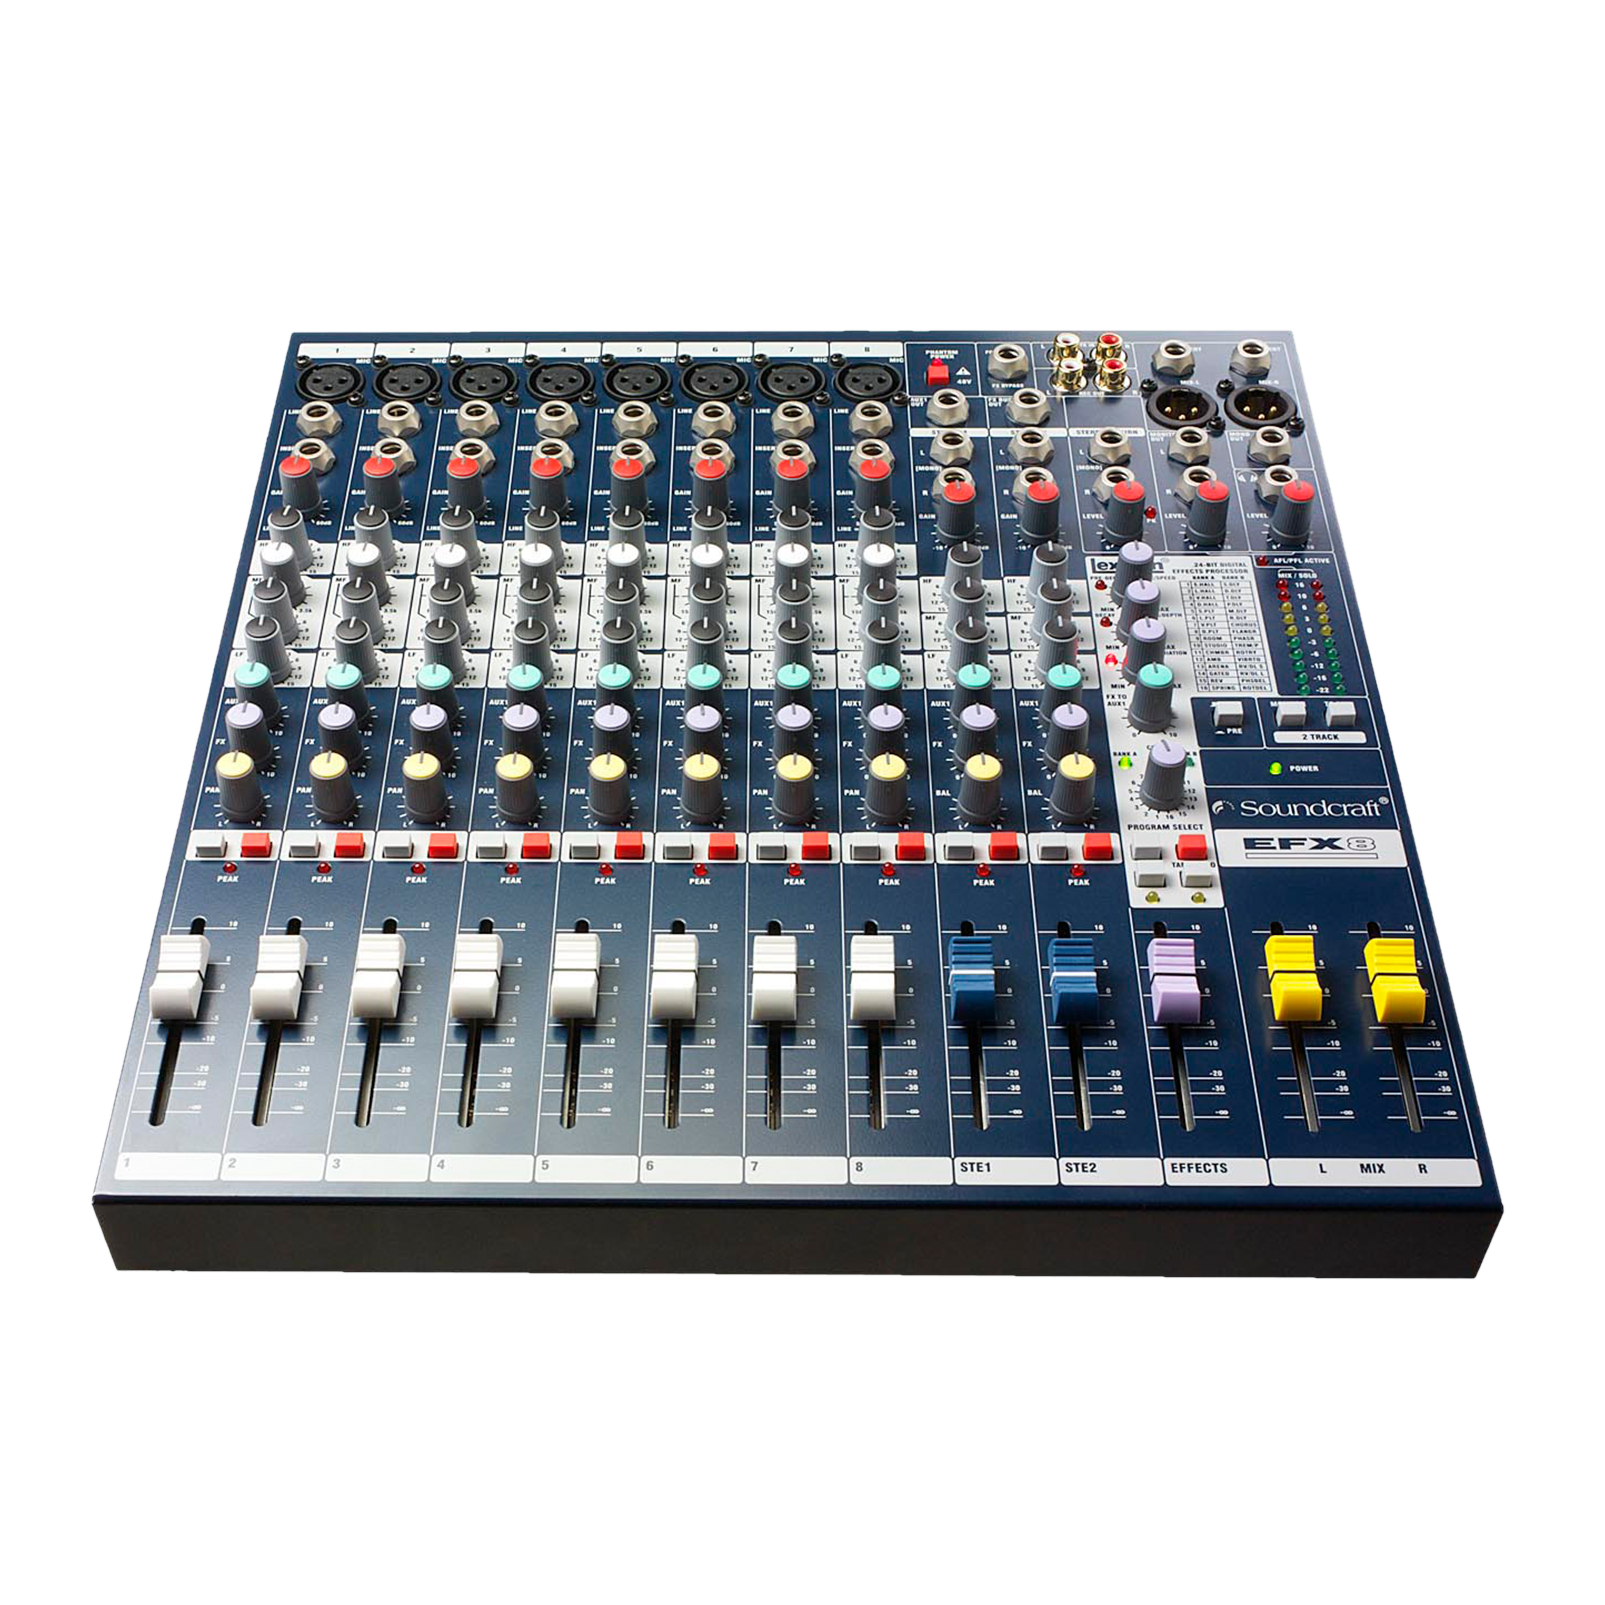 EFX8 - Dark Blue - Compact analogue 8 channel mixer with built-in effects - Detailshot 1